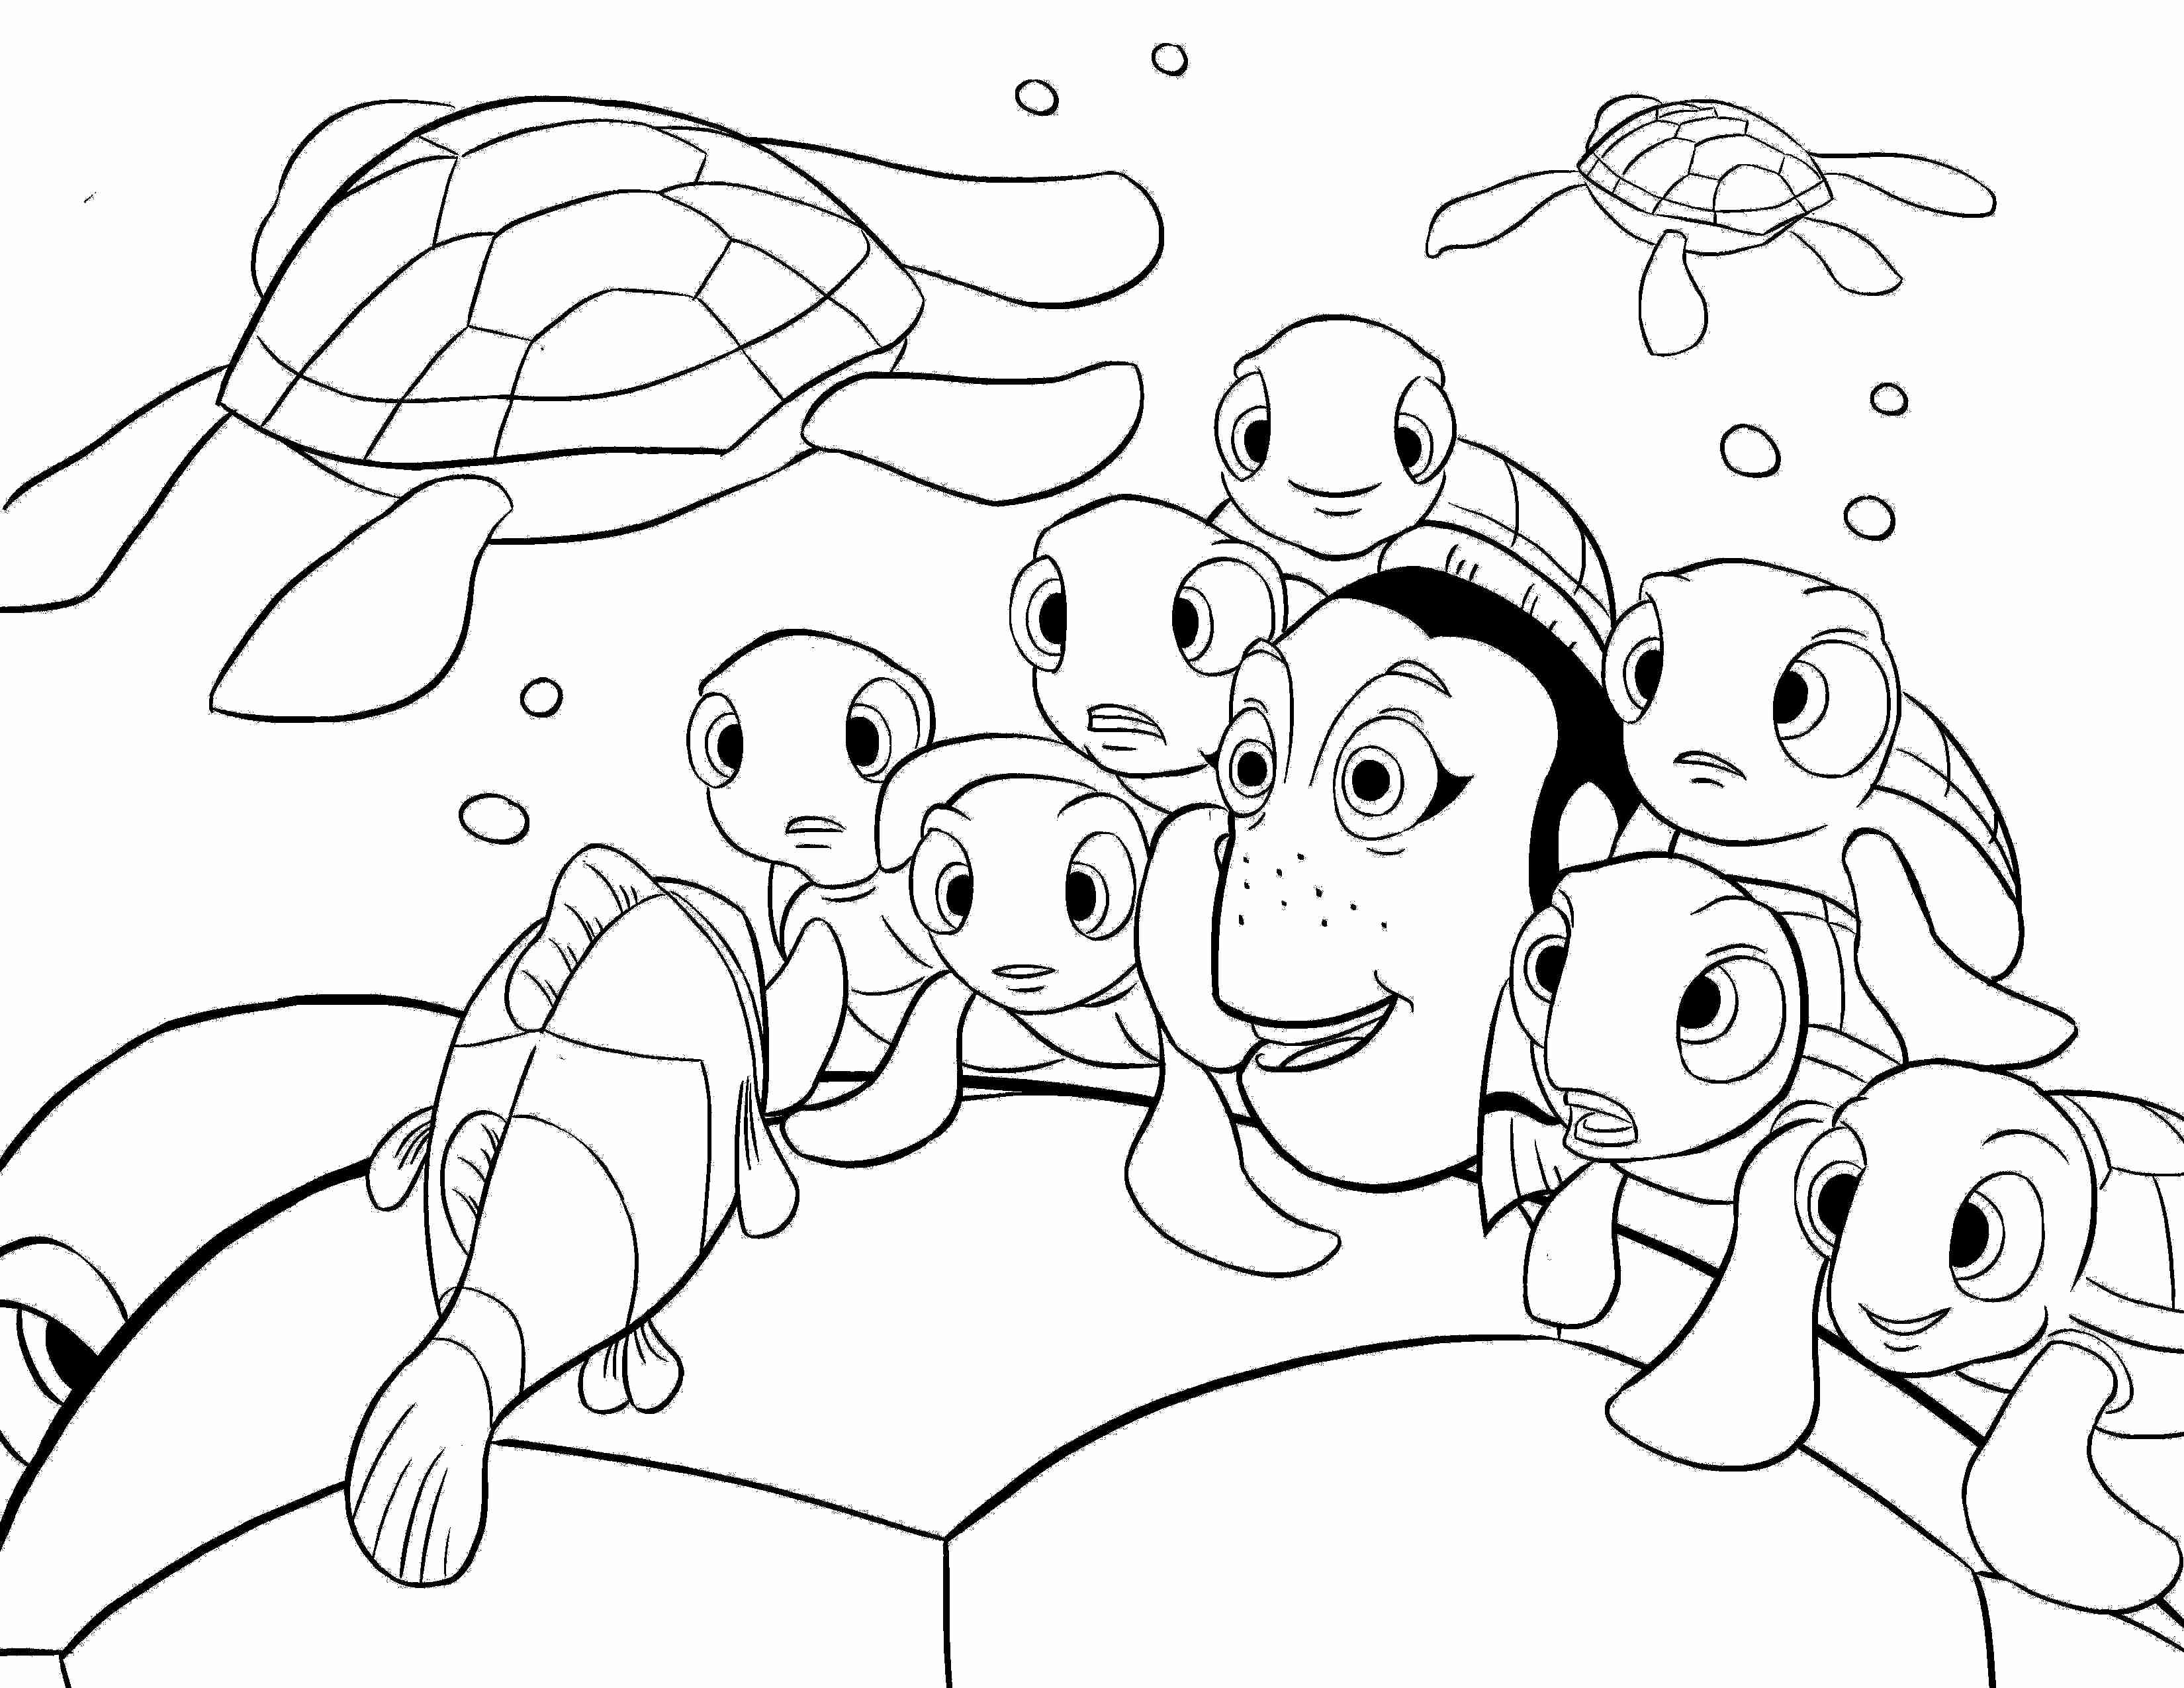 3300x2550 Finding Nemo Printable Coloring Page Of General Sheet For Kids